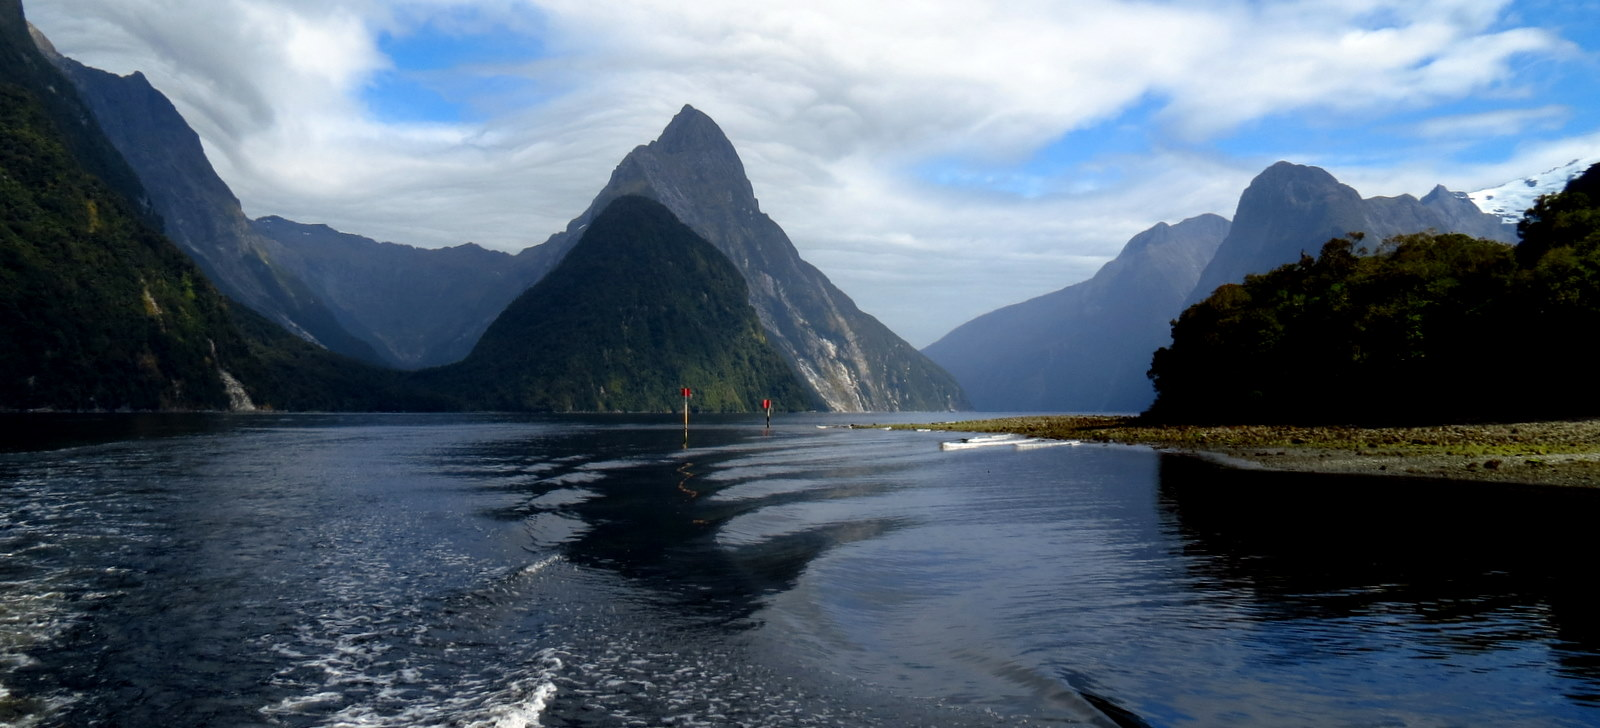 milford-sound-jetty-view